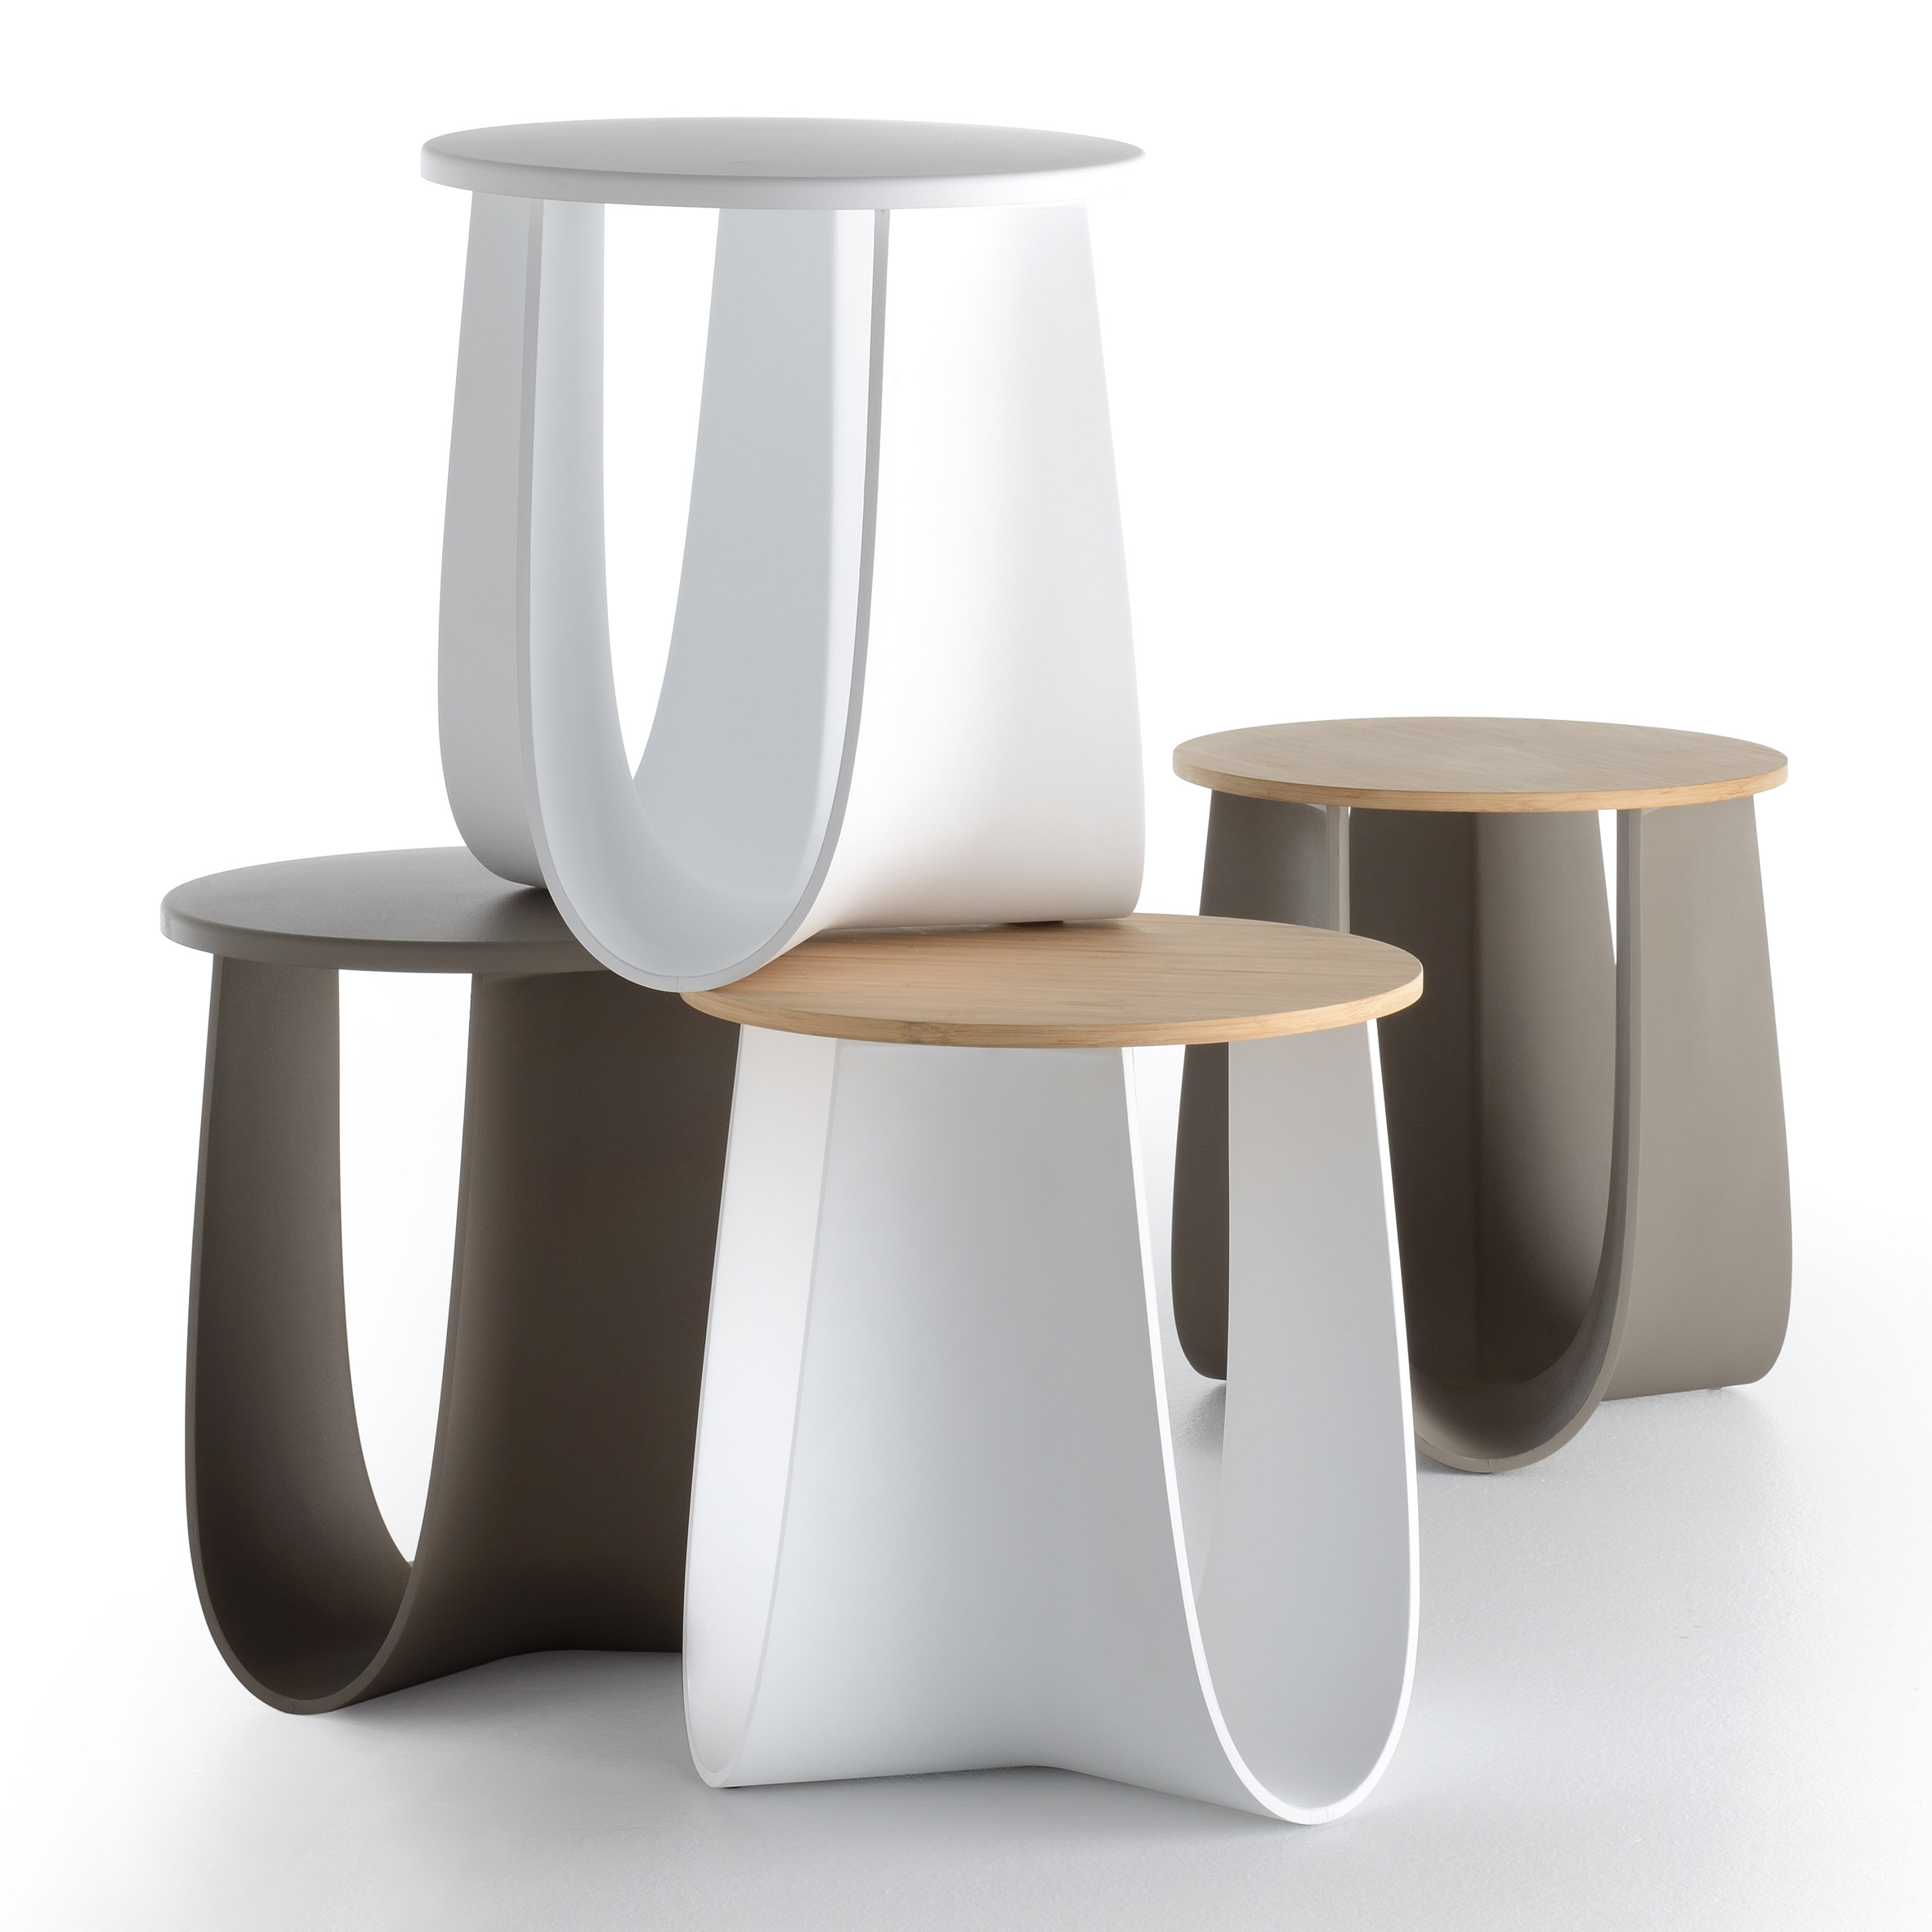 Competition: win a Sag stool designed by Nendo for MDF Italia